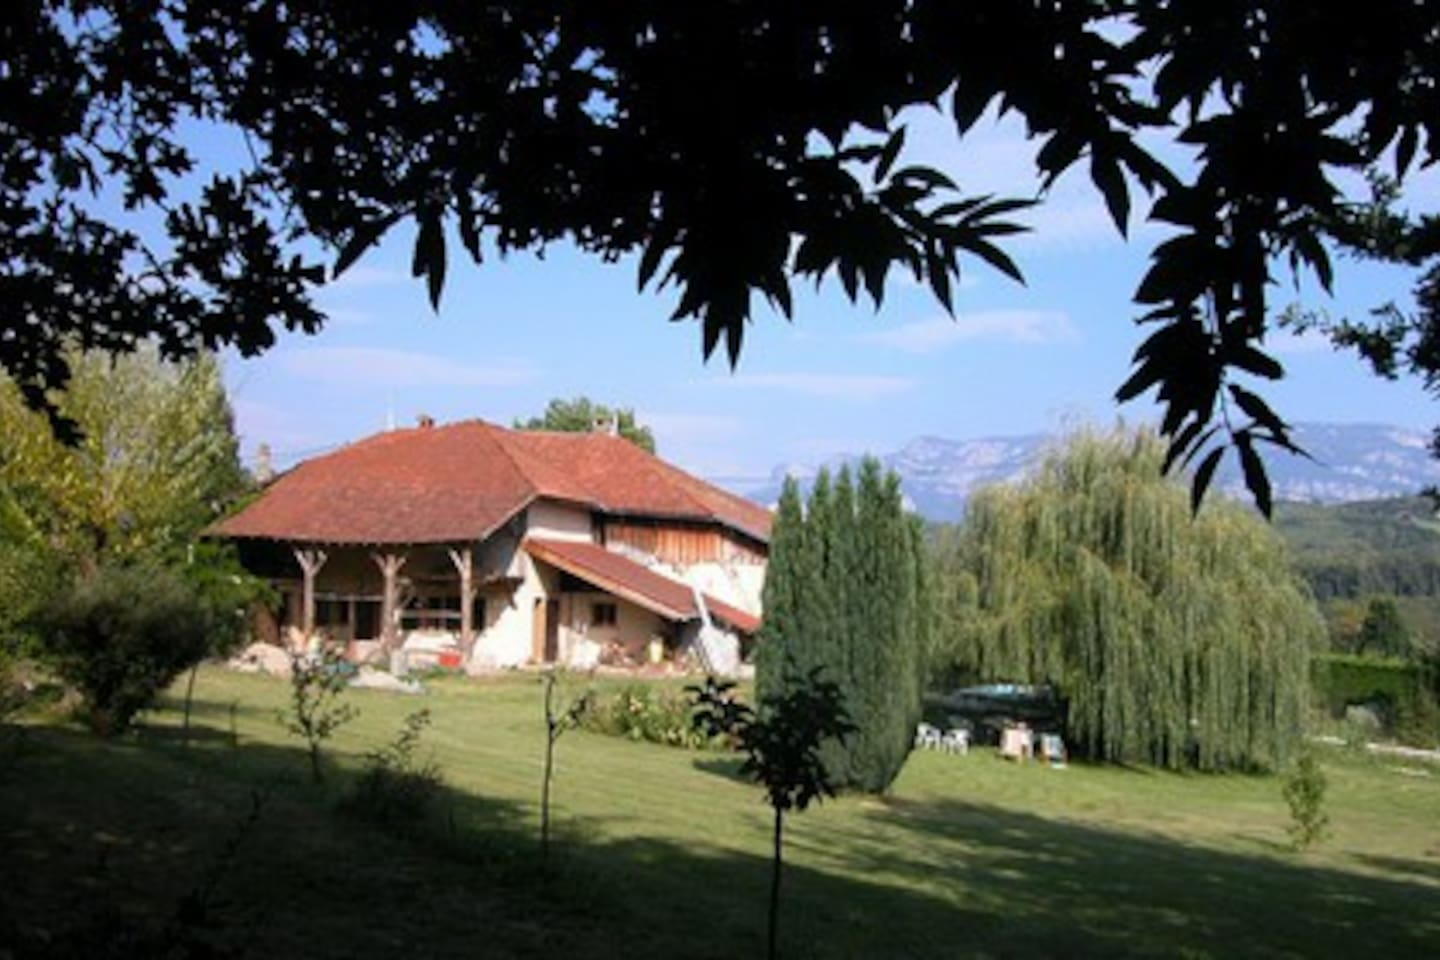 The house, view from the garden, with the Vercors in the background